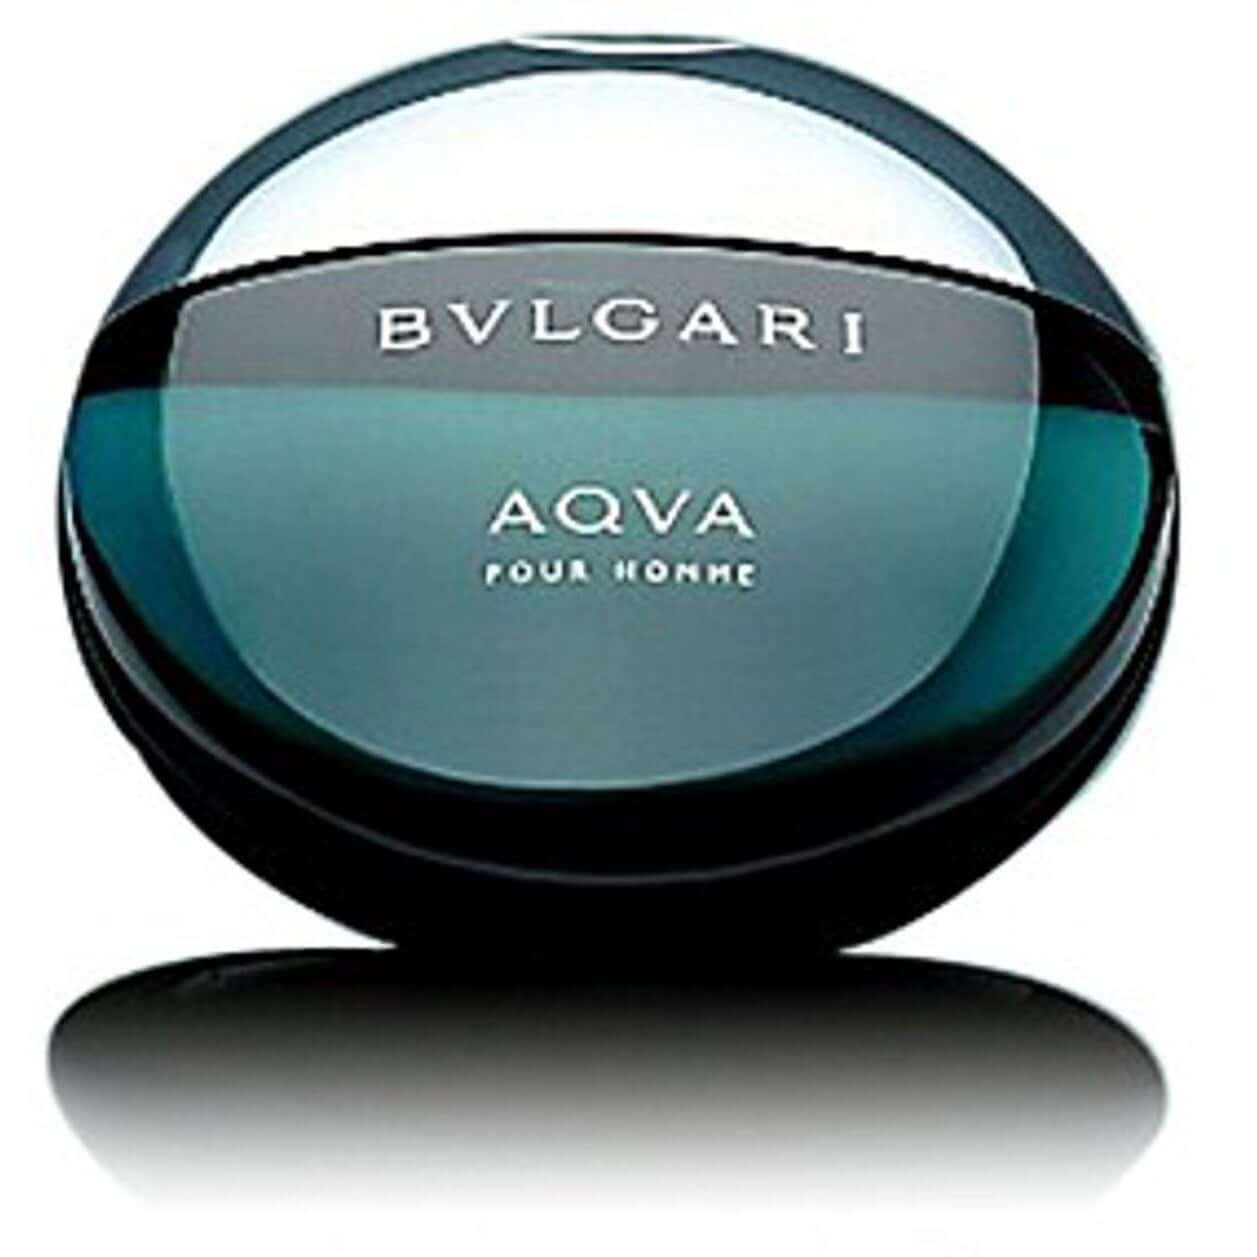 bvlgari-aqua-cologne-for-men-by-bvlgari-3-3-3-4-oz-new-tester-aqva